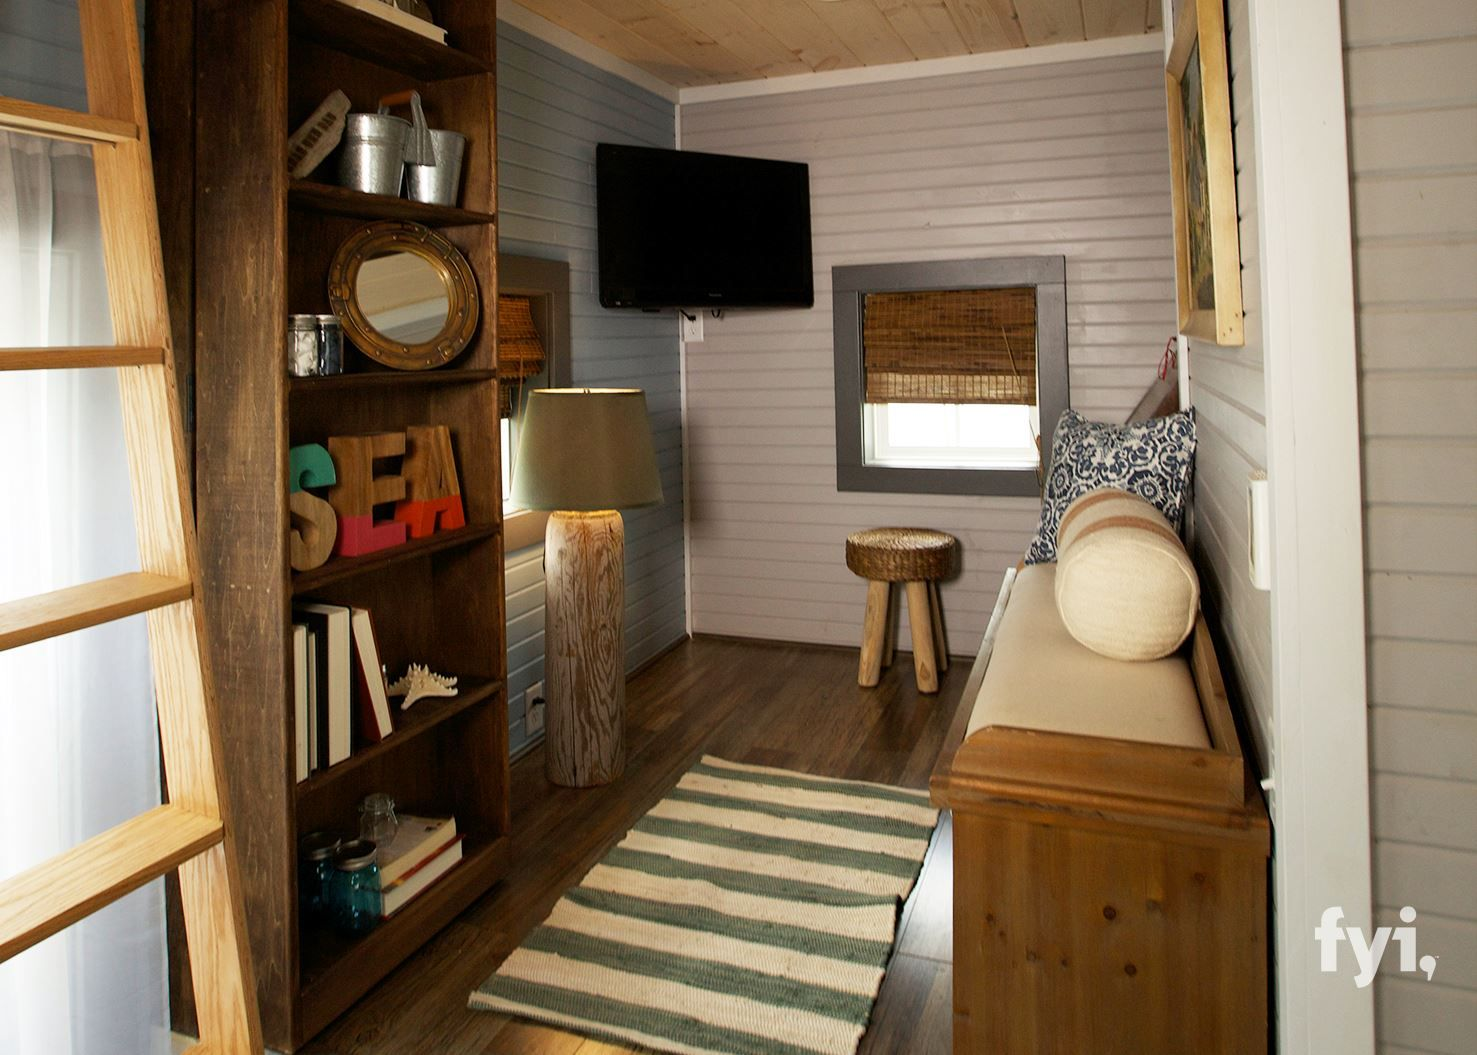 CHARMING SEA SIDE INSPIRED TINY HOUSE - TINY HOUSE TOWN